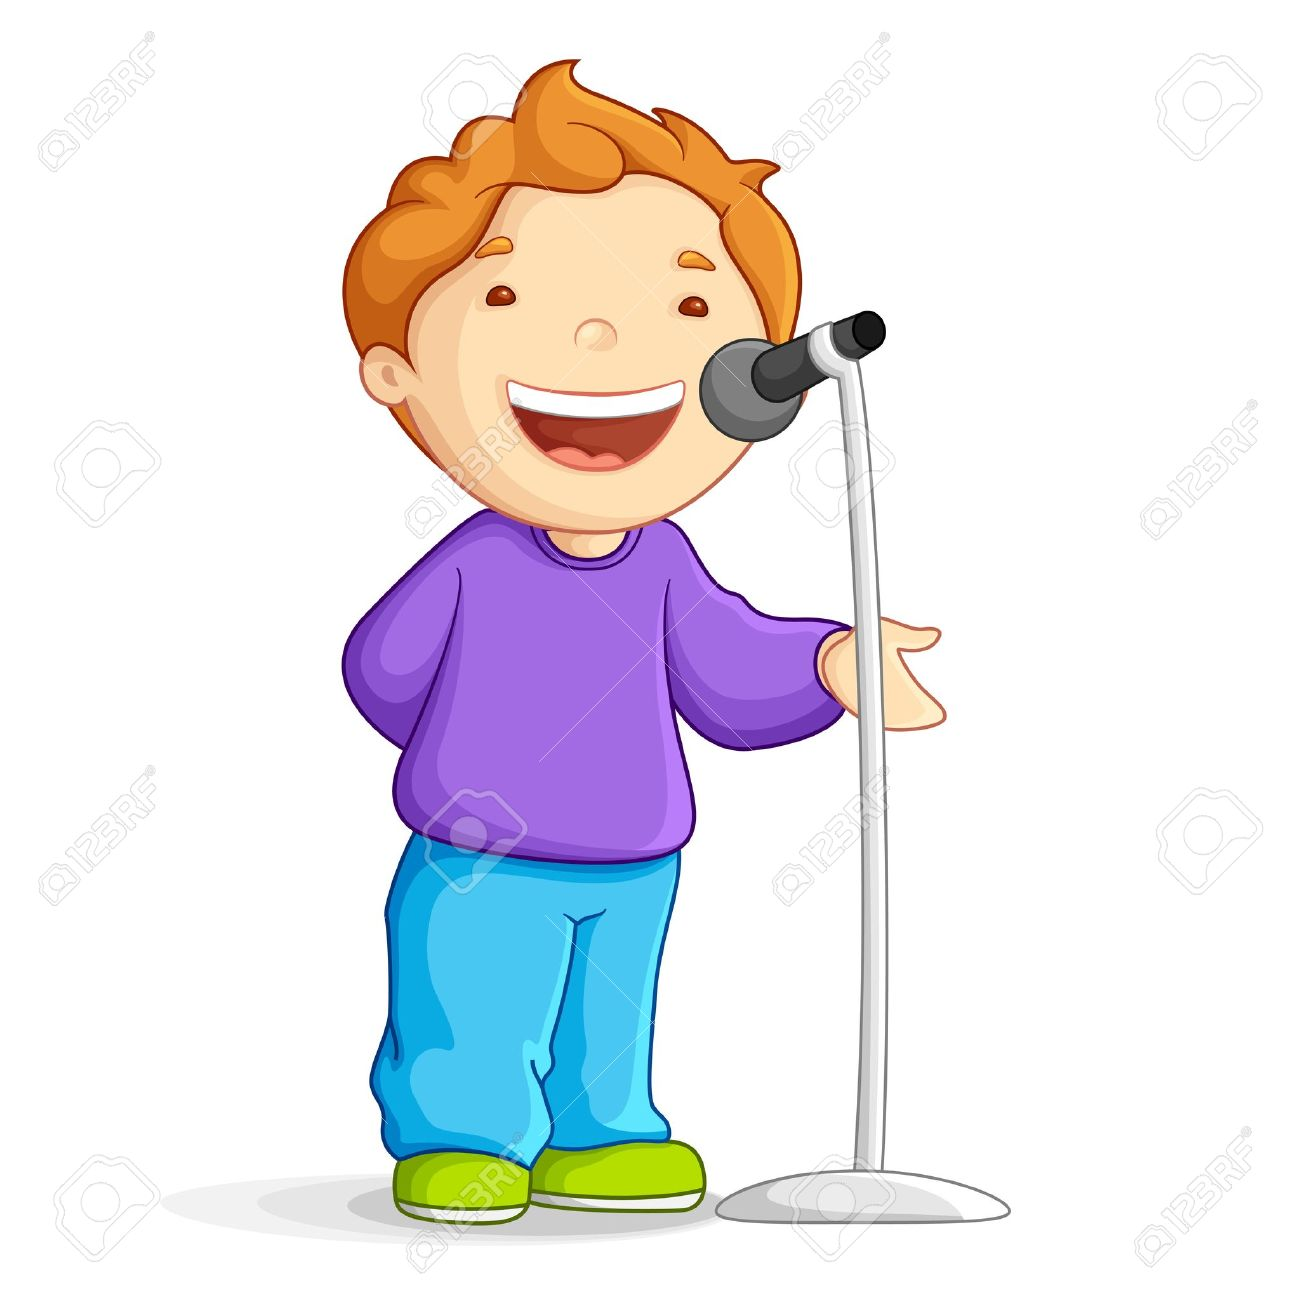 Sing Clipart #107-Sing Clipart #107-7